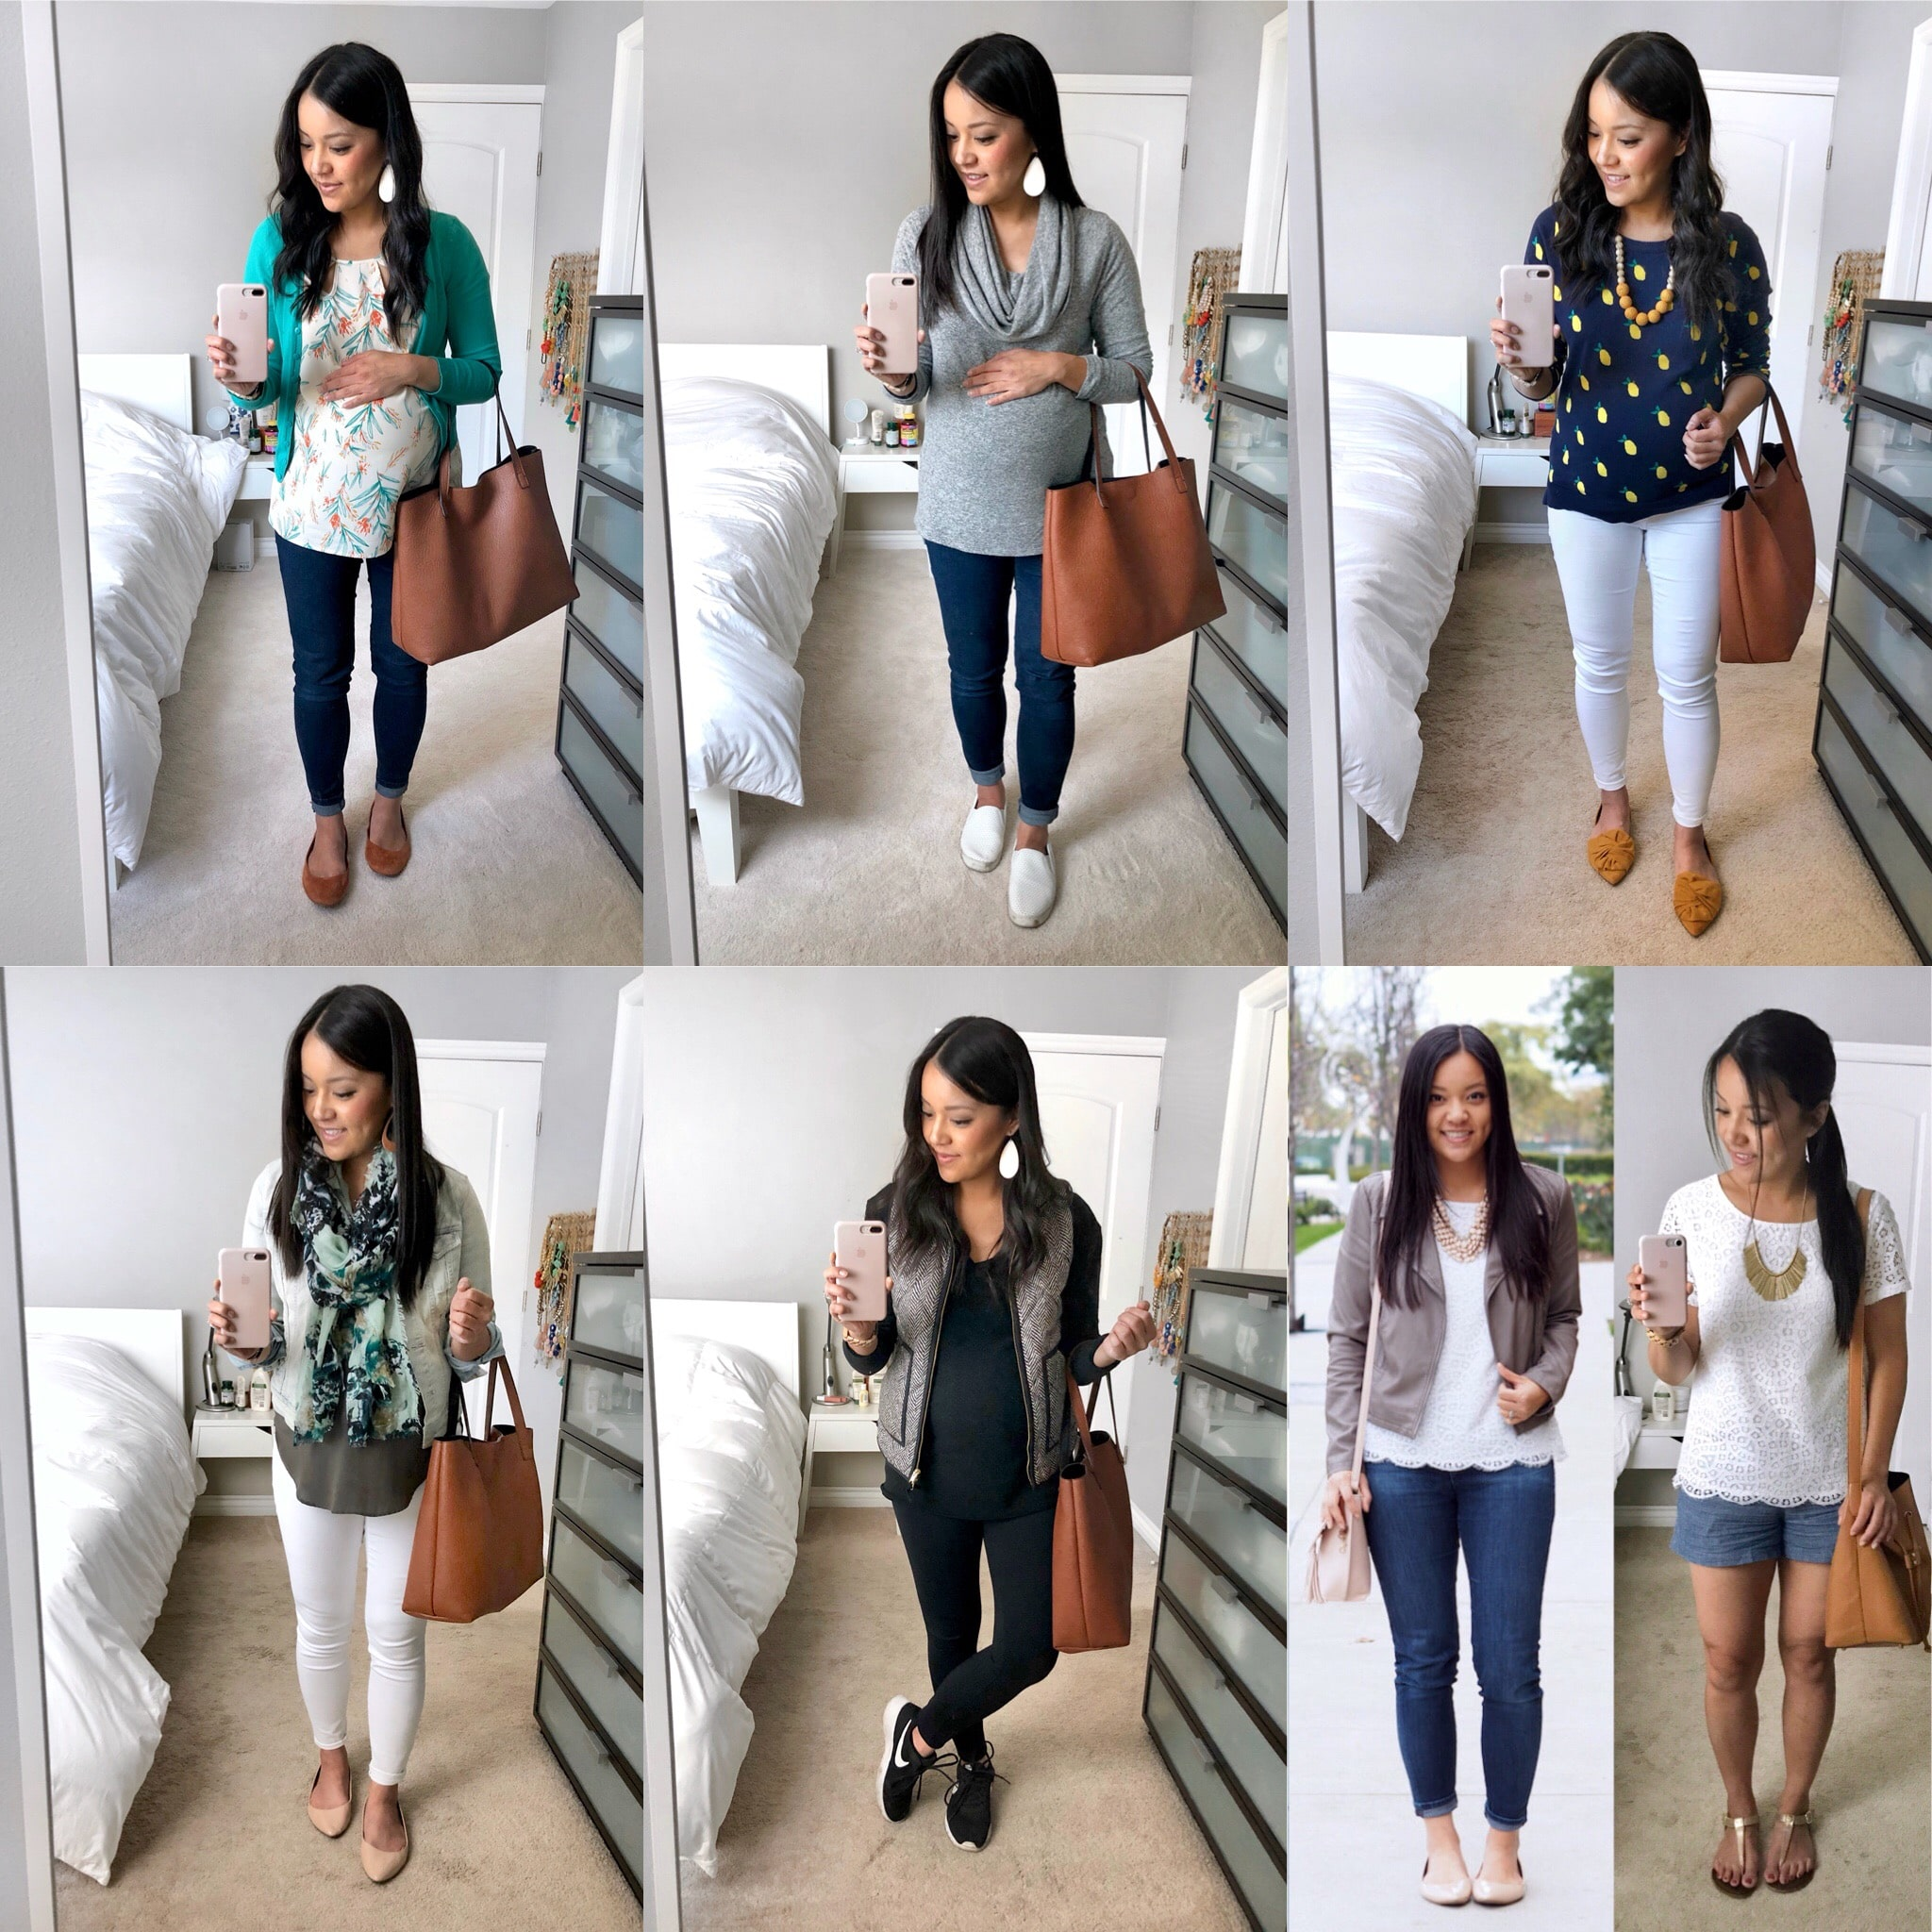 34cb30f6e624a Daily Outfits #34: Everyday Spring Outfits and Sale Items